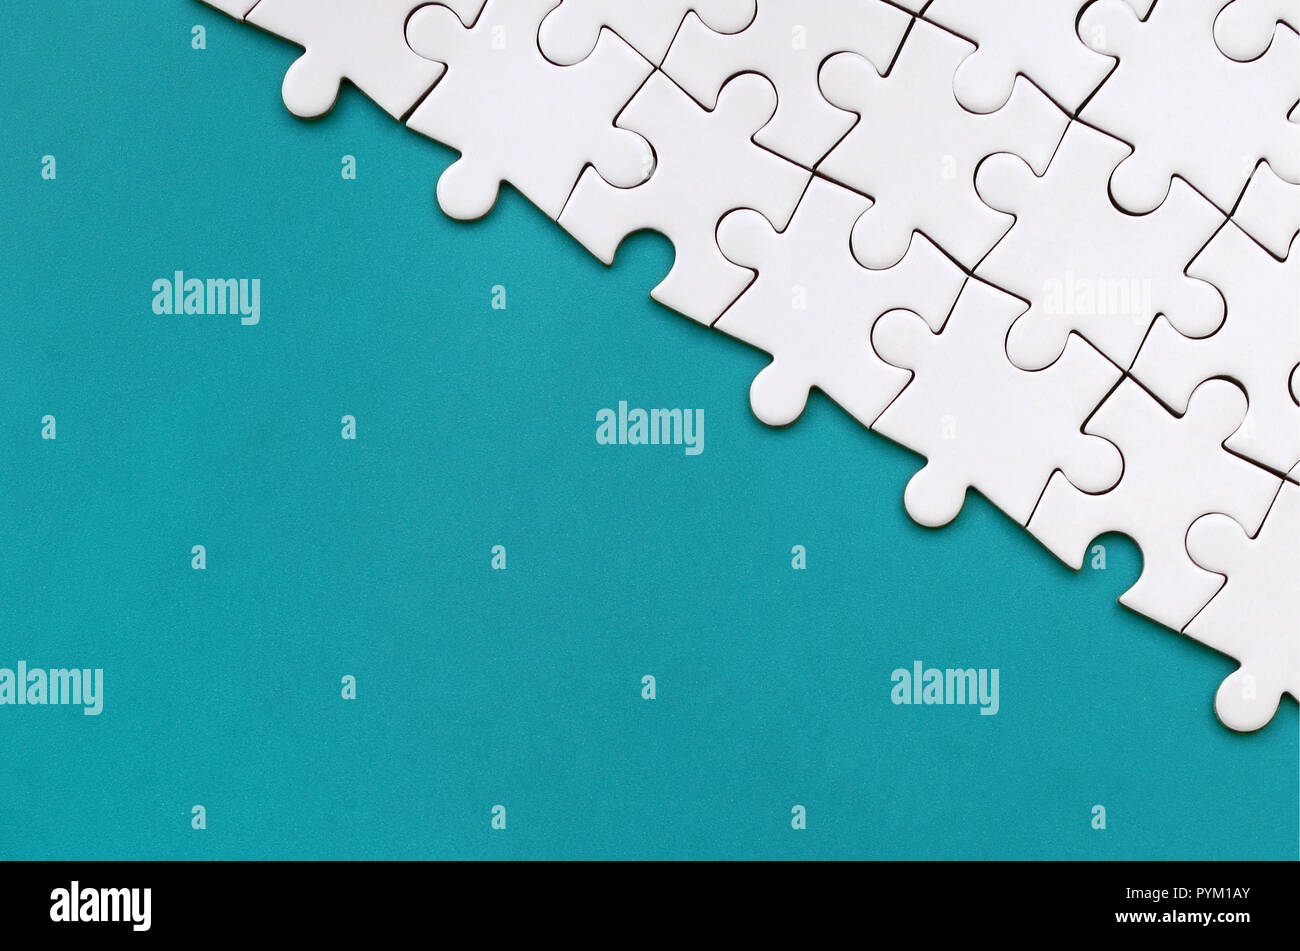 Fragment of a folded white jigsaw puzzle on the background of a blue plastic surface. Texture photo with copy space for text - Stock Image